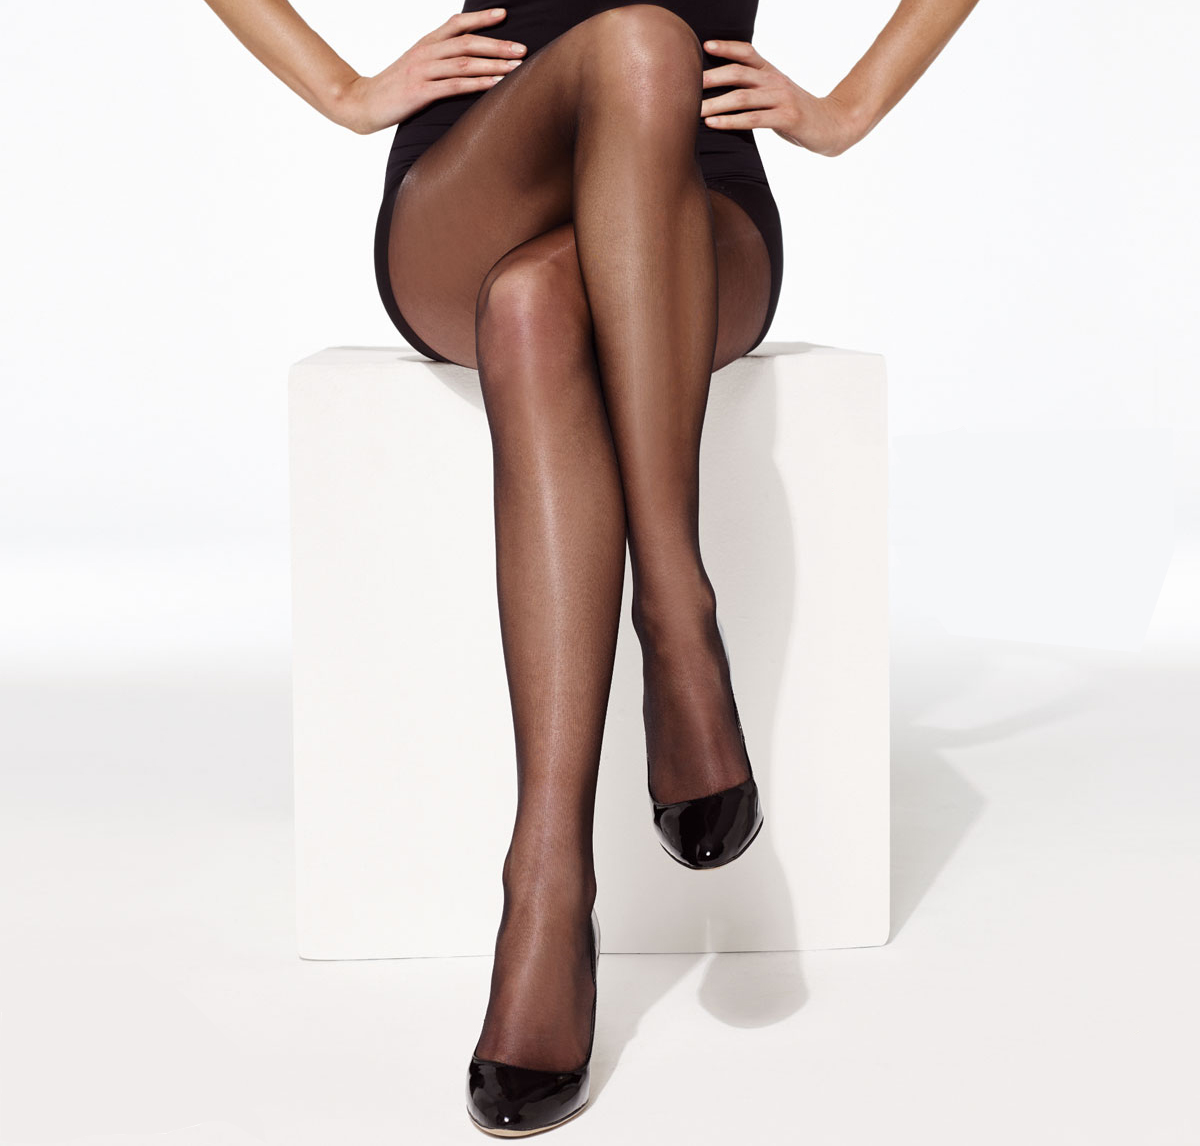 dfb8afa0126cb Tights Shop - Superb Range Of Tights at Stockings Direct